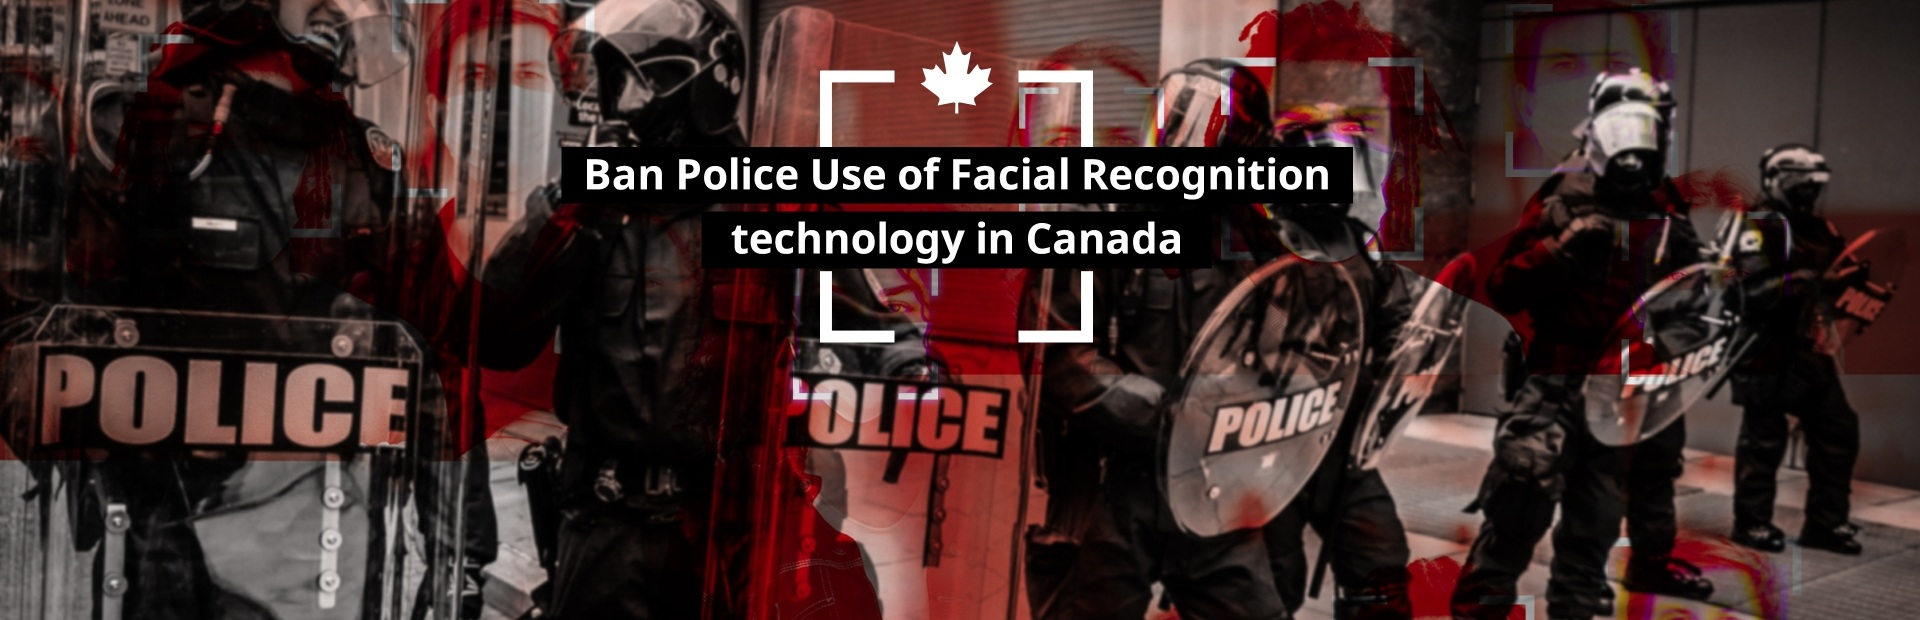 Ban Police Use of Facial Recognition in Canada